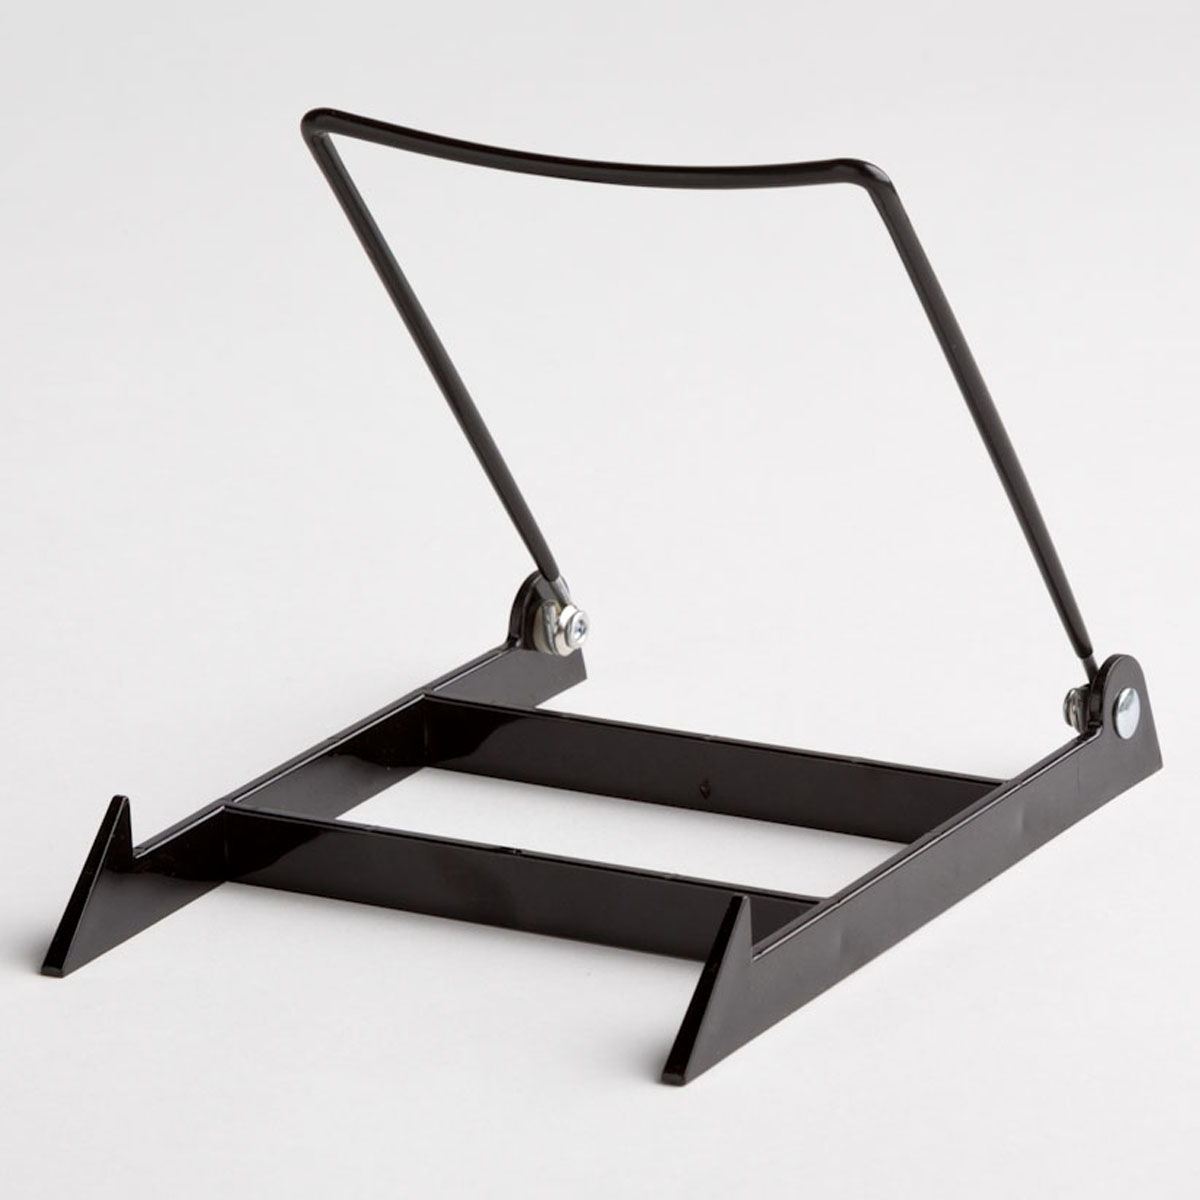 Countertop Easel - Adjustable | A&B Store Fixtures